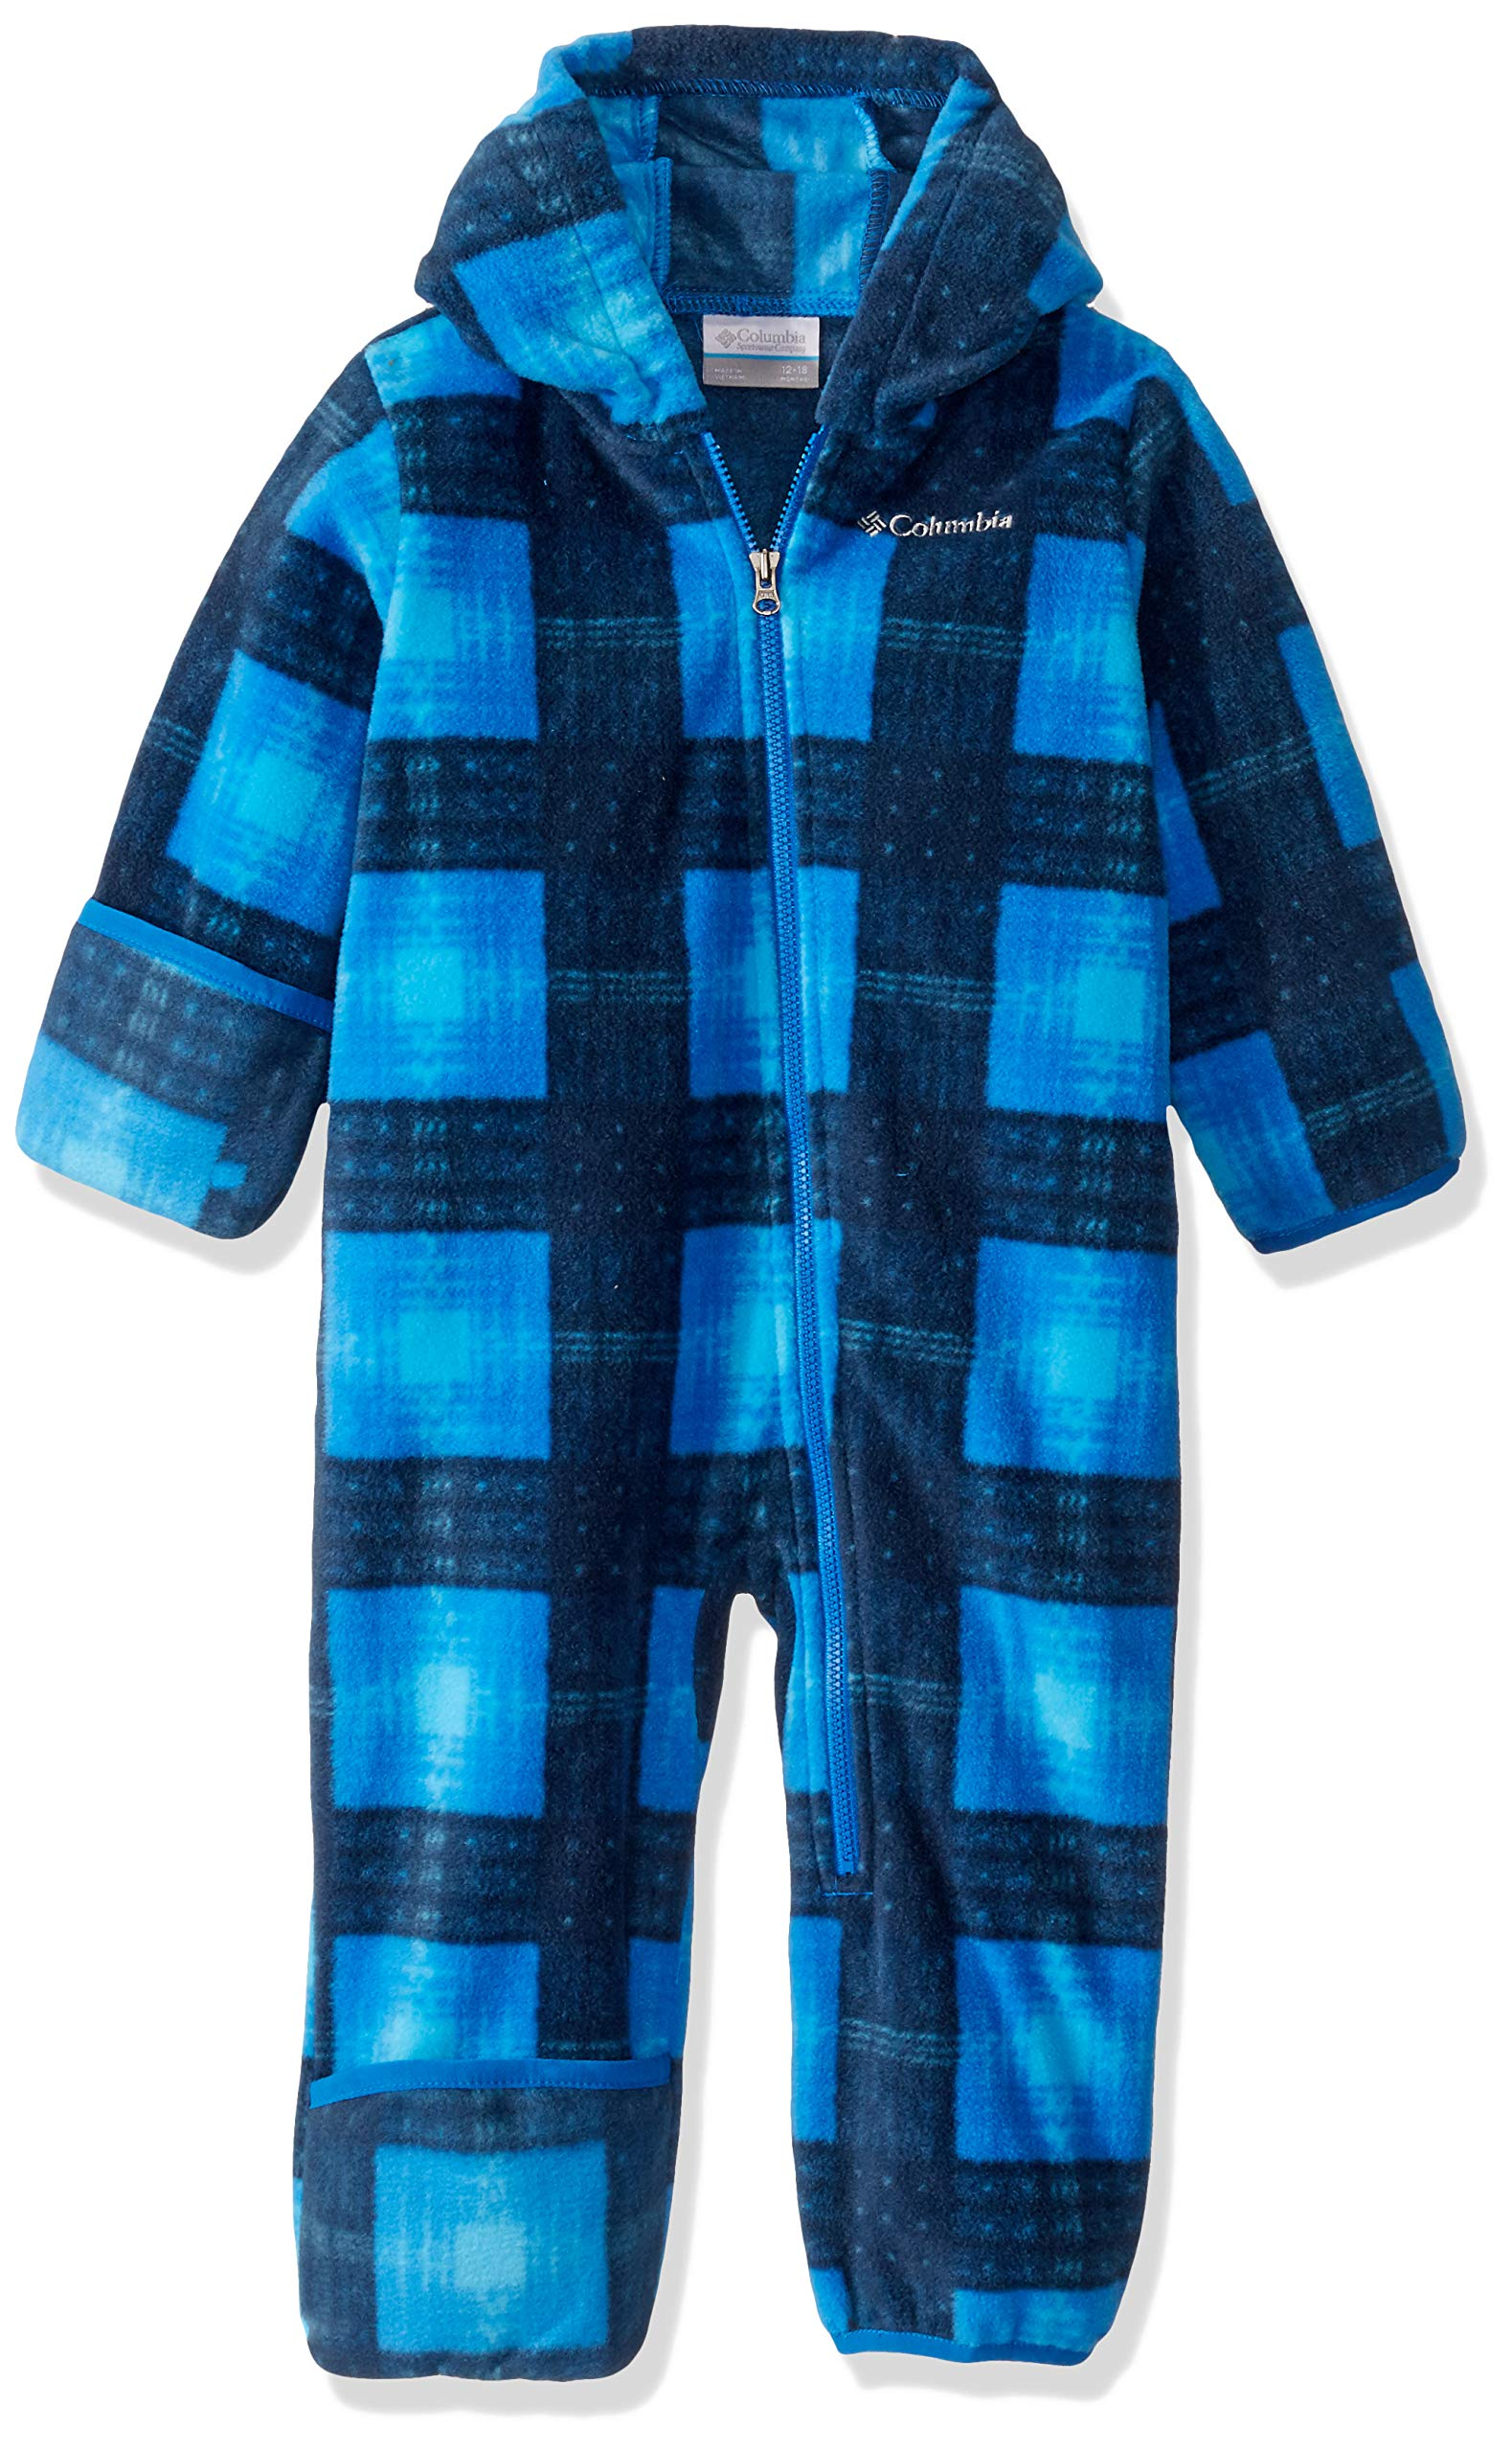 Columbia Baby Snowtop II Bunting, collegiate navy plaid, 6/12 by Columbia